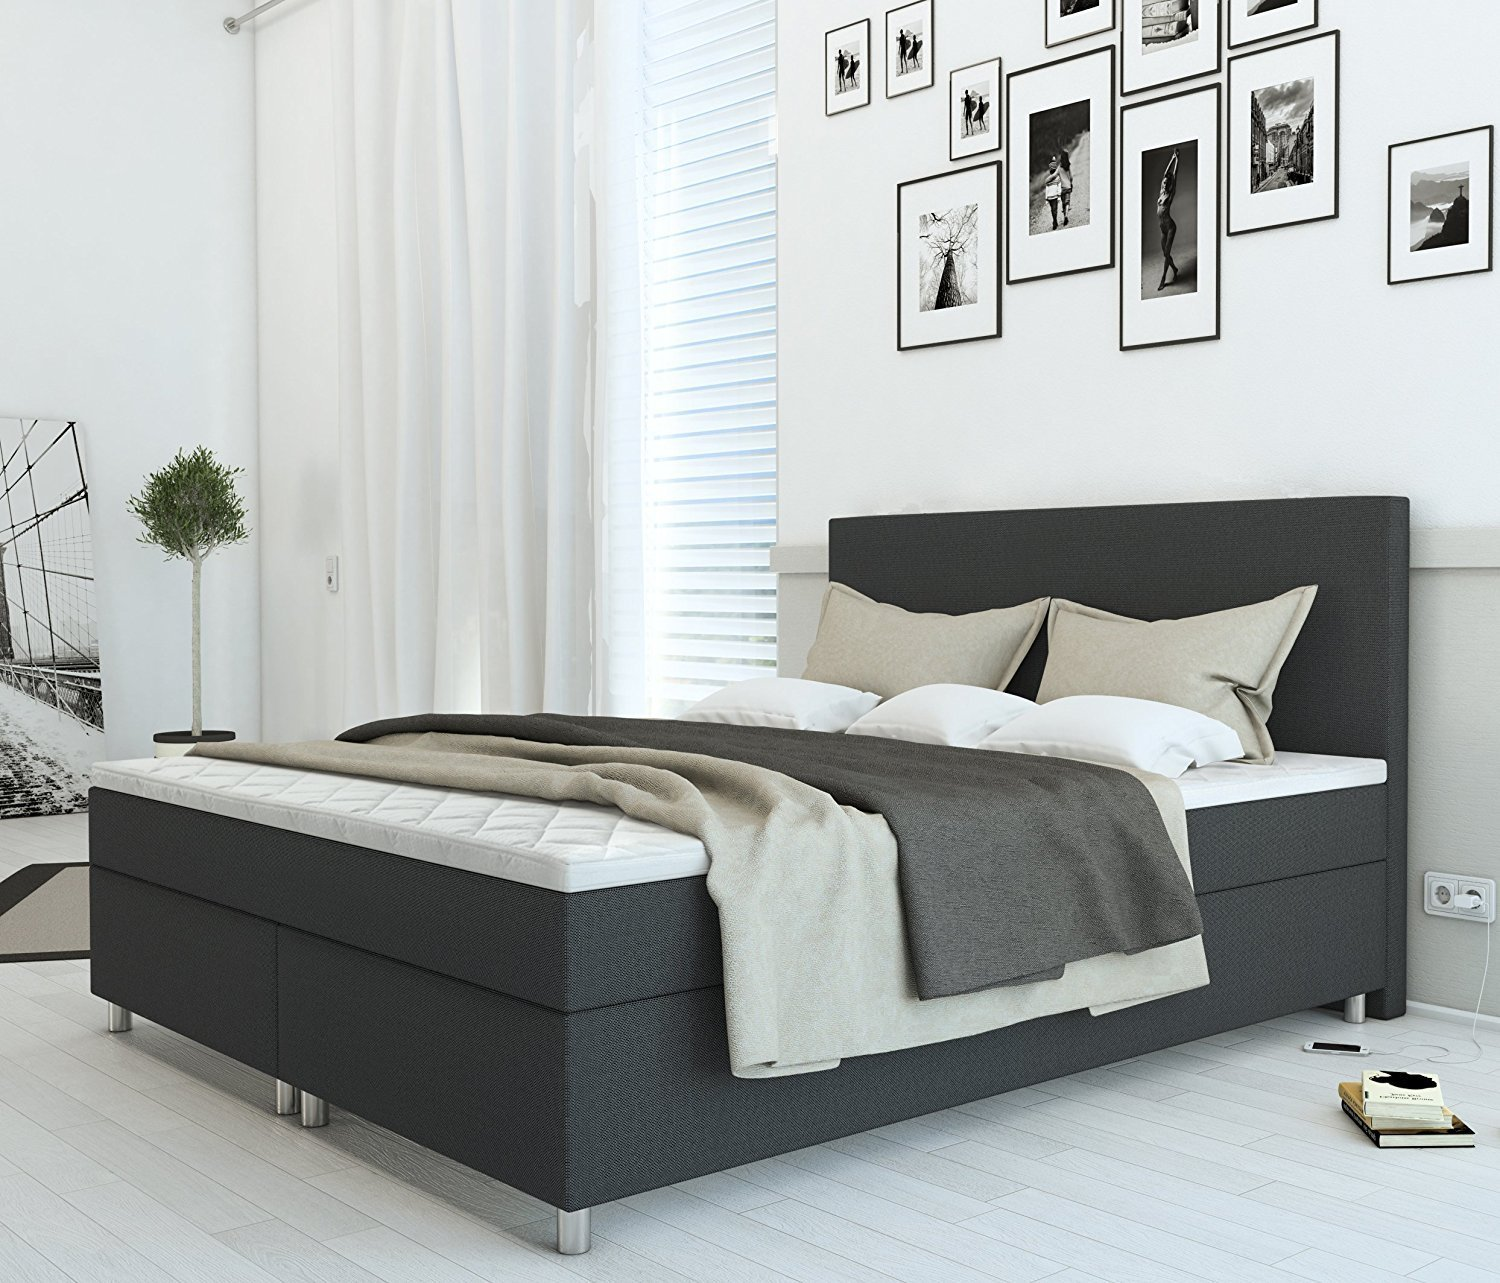 sam boxspringbett stoffbezug grau 160 x 200 cm hotelbett malmb demn chst. Black Bedroom Furniture Sets. Home Design Ideas